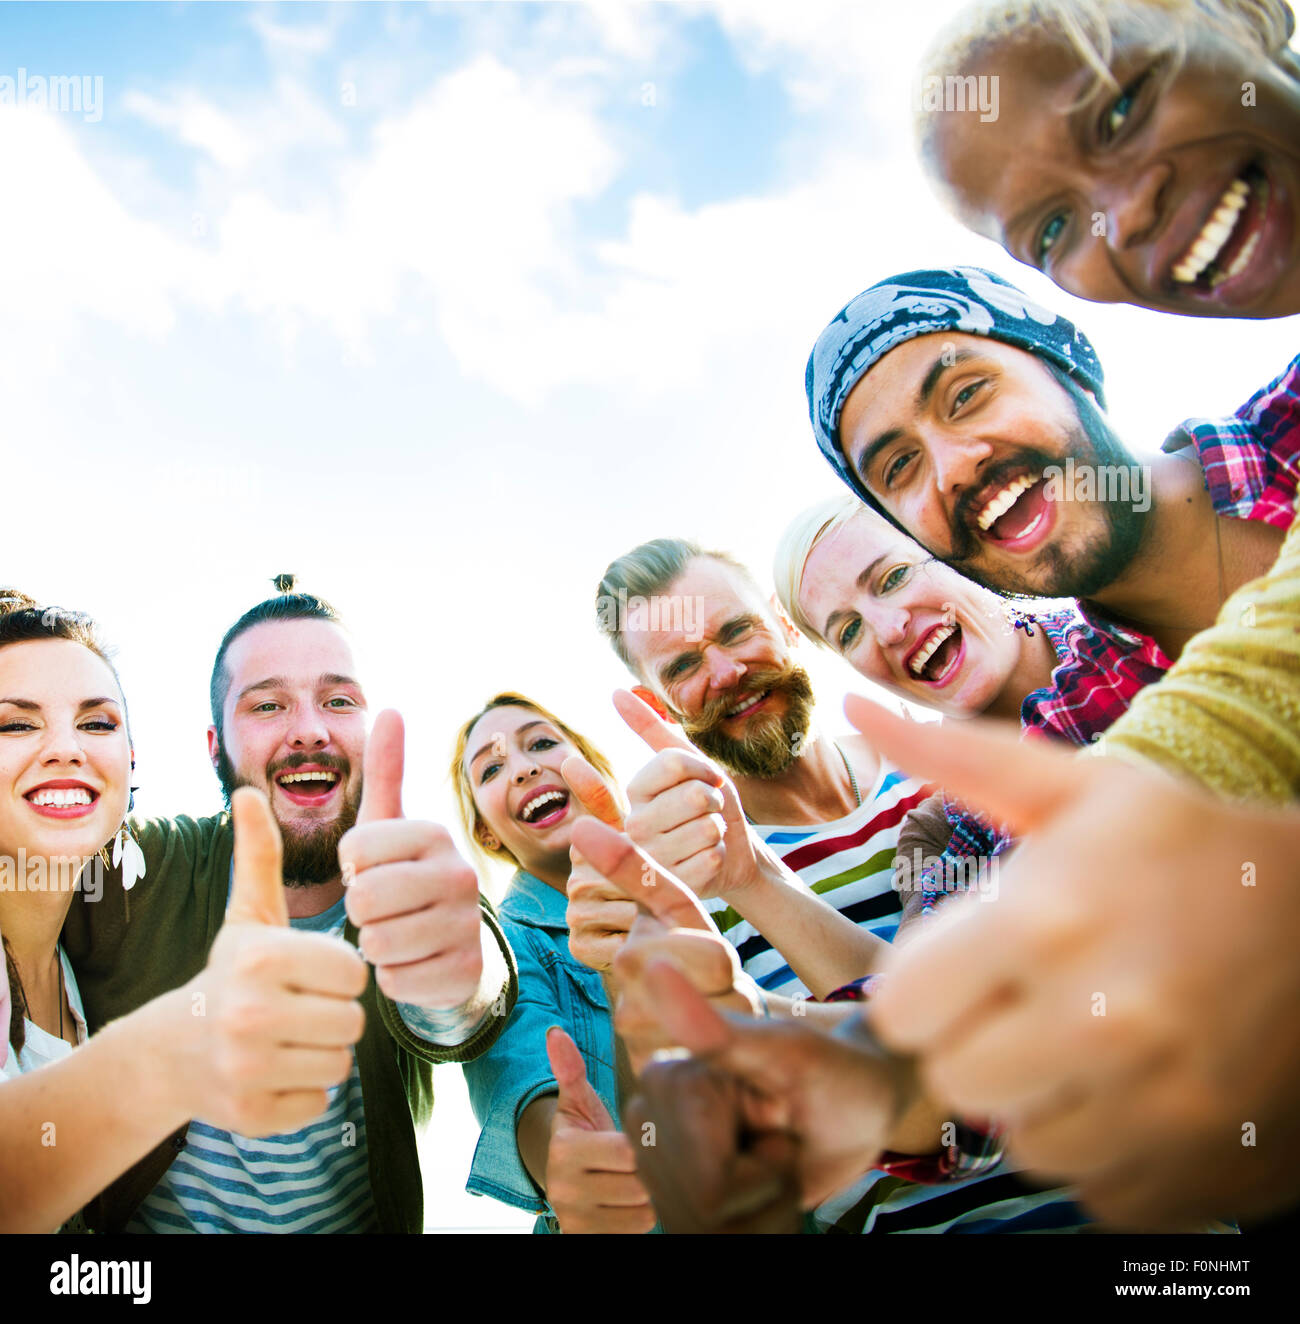 Friends Friendship Like Thumbs up Togetherness Fun Concept - Stock Image